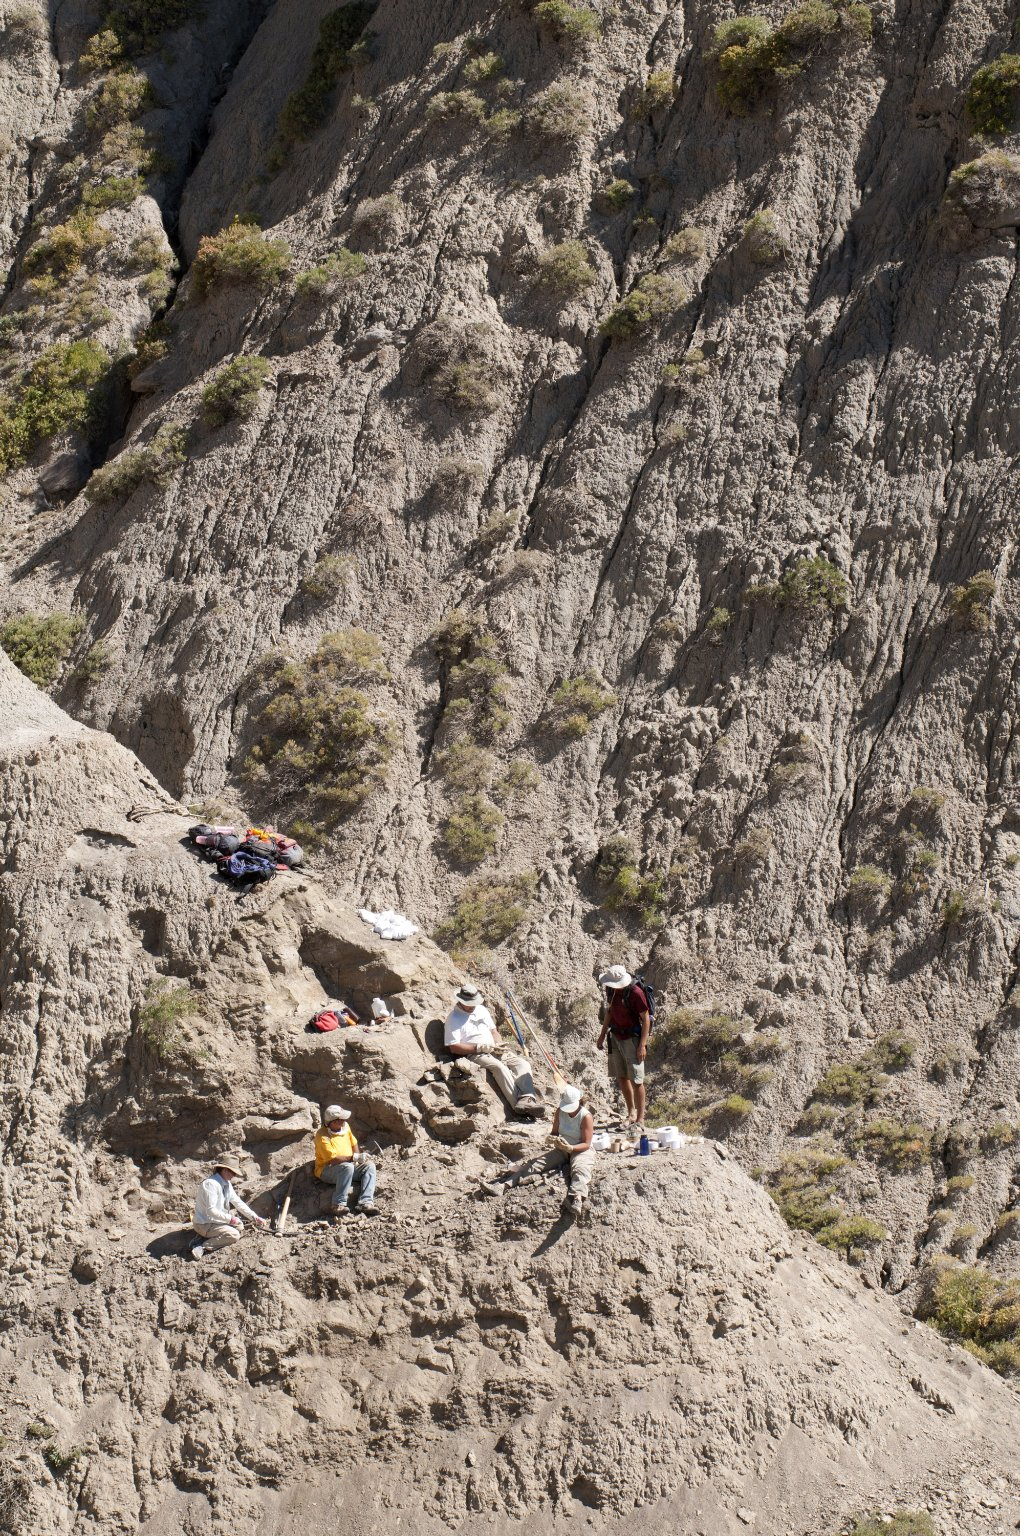 Dr. Kirk Johnson (in white shirt sitting against rock in middle) examines a specimen while DMNS Volunteers look on.